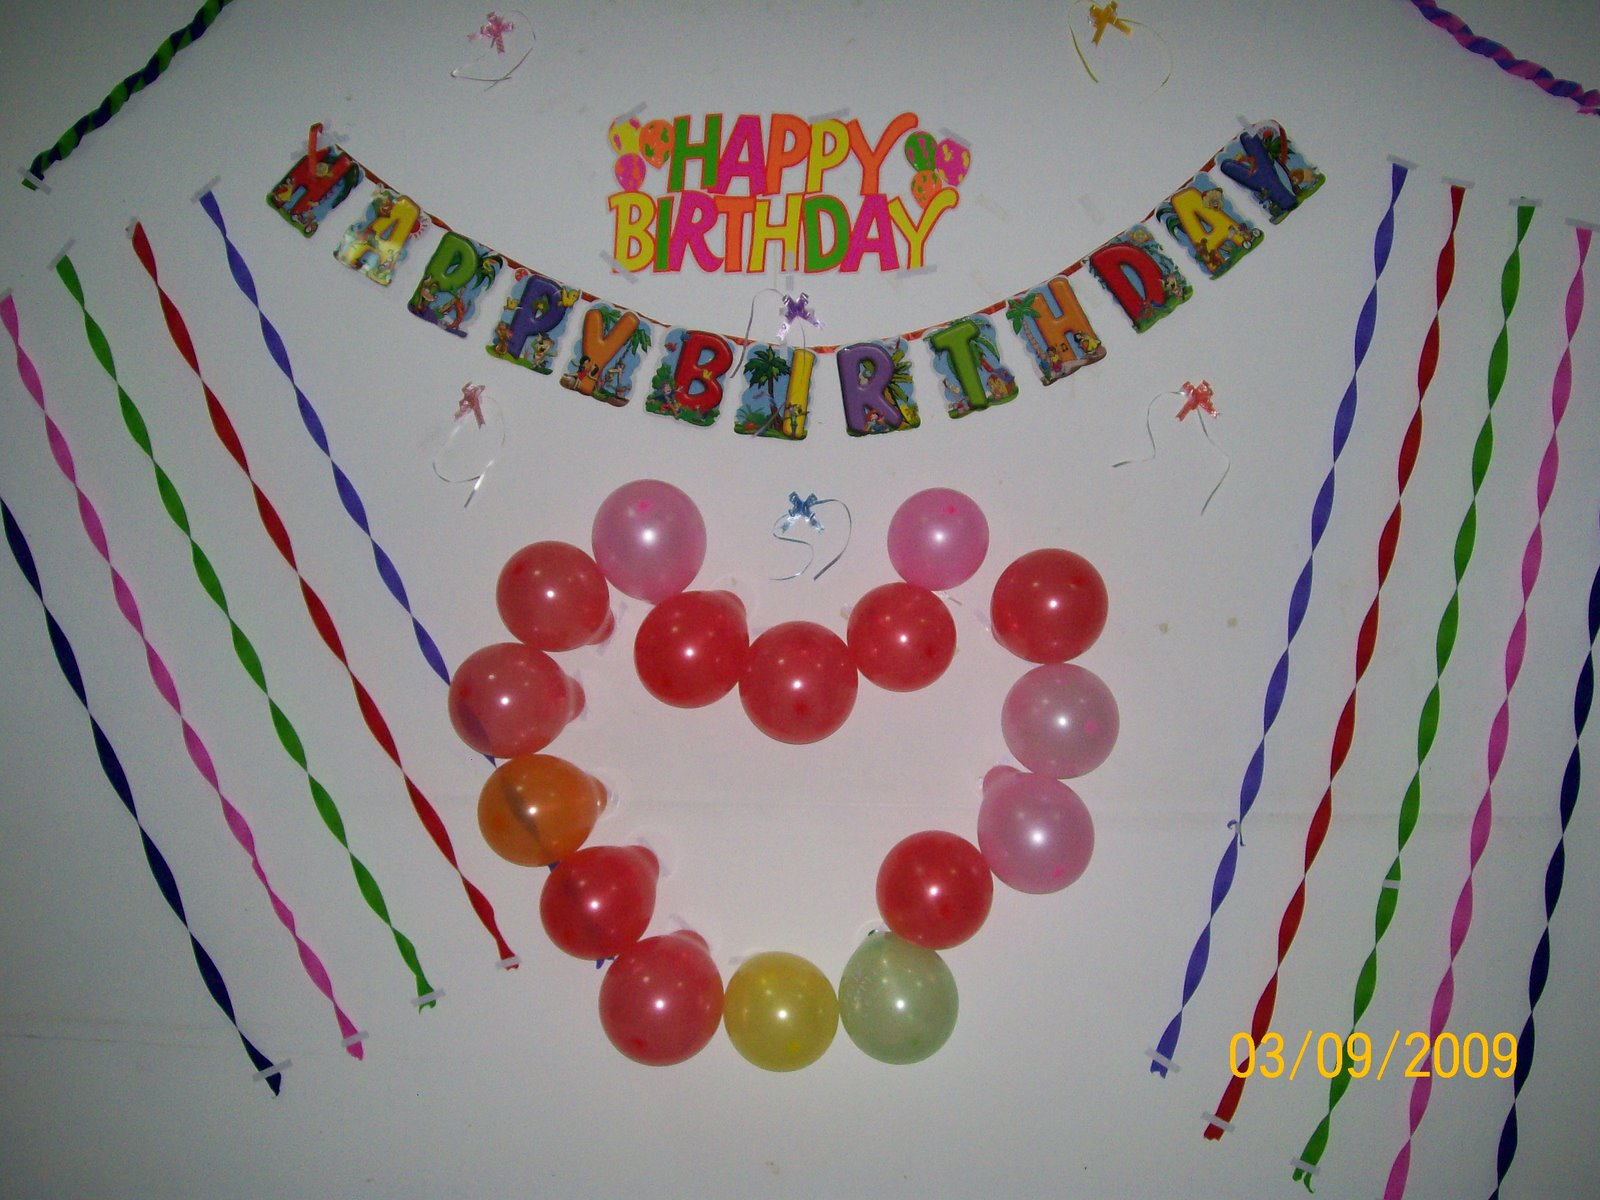 Birthday Wall Decorations Images Image Inspiration of Cake and